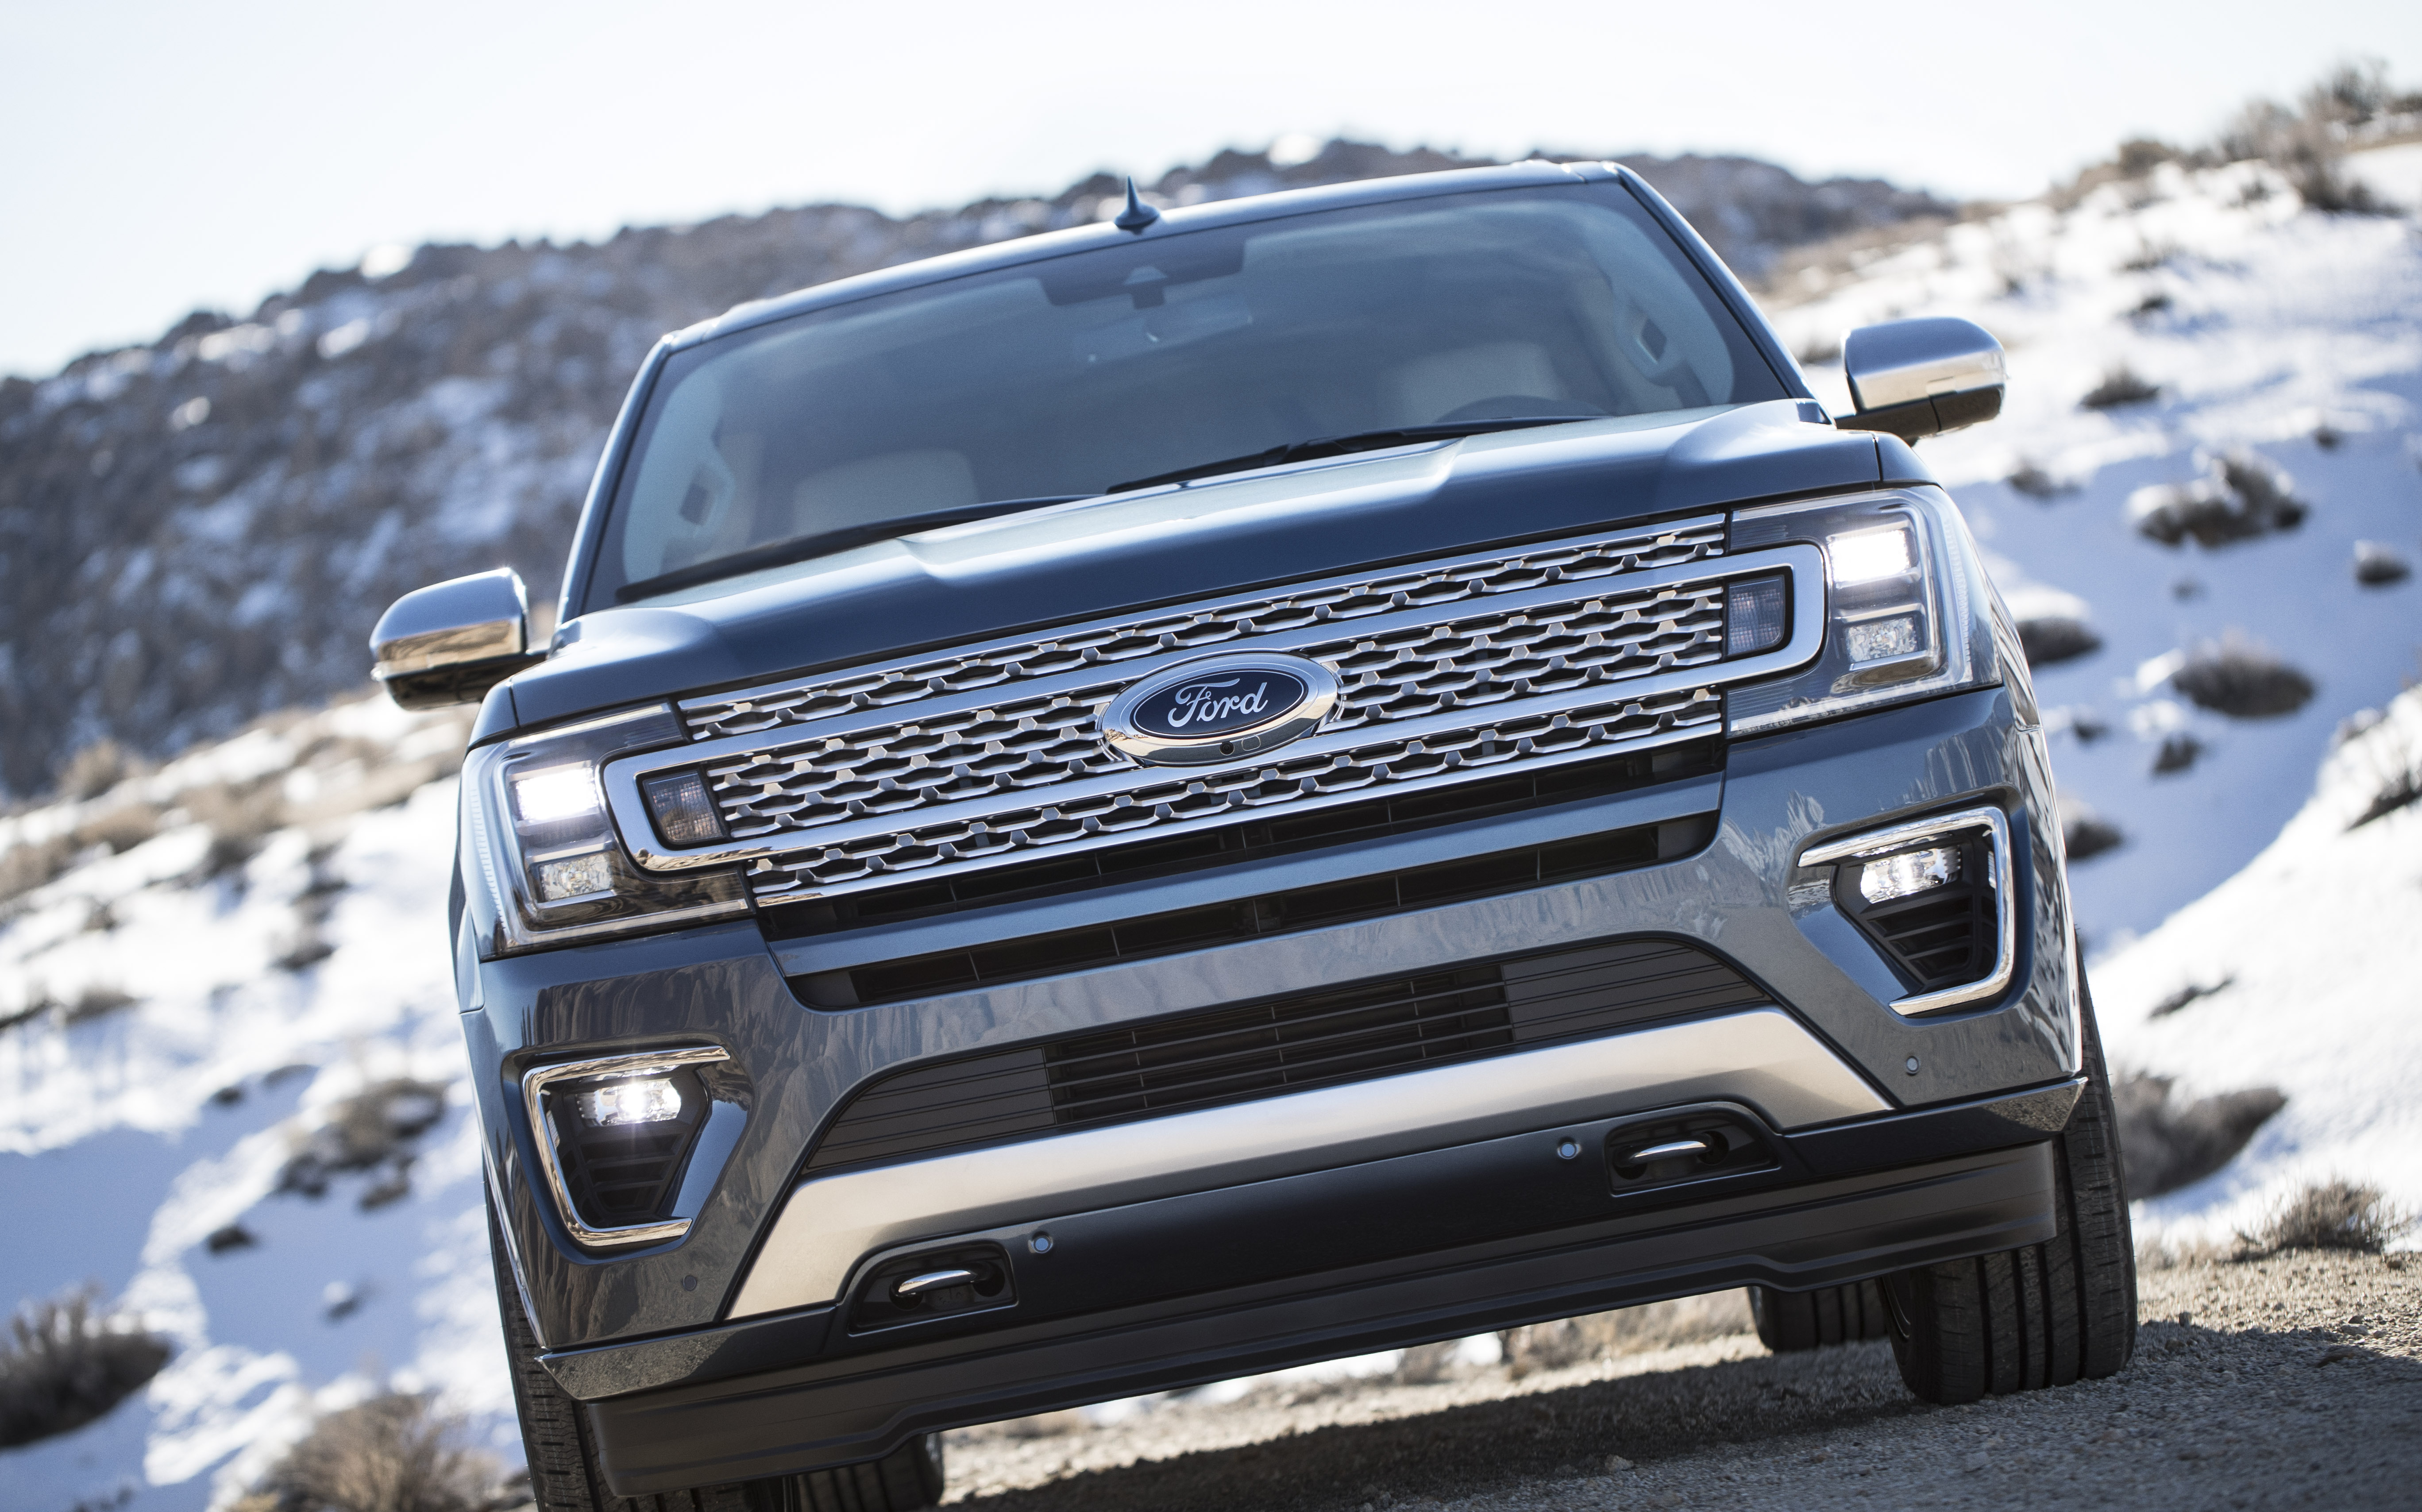 2018 ford expedition aluminum. fine ford 2018 ford expedition cuts 300 pounds with aluminum f150 auto body  certification transfers to suv too  repairer driven news in ford expedition aluminum